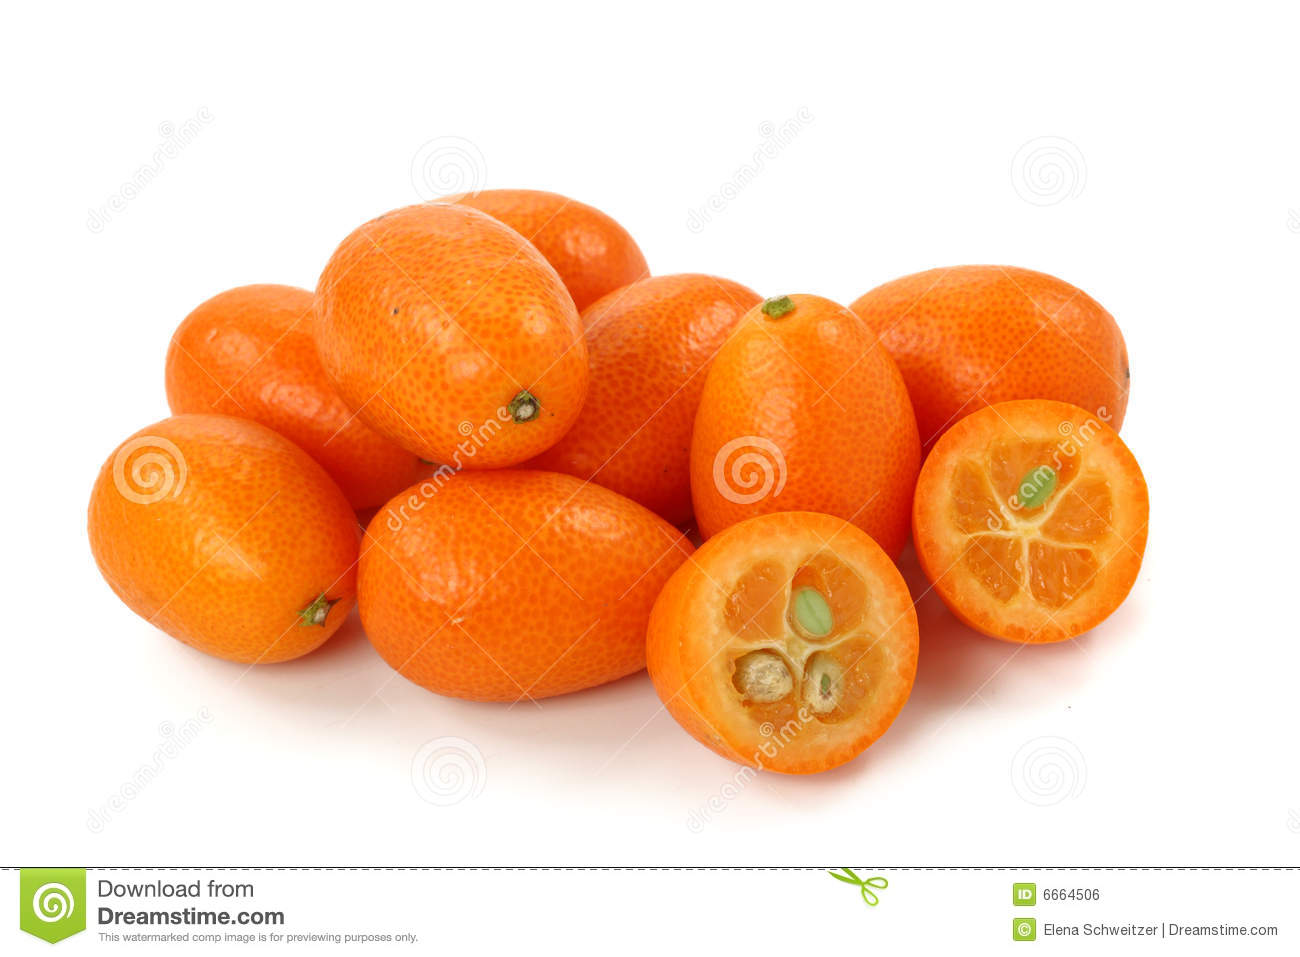 Cumquat Royalty Free Stock Image - Image: 6664506